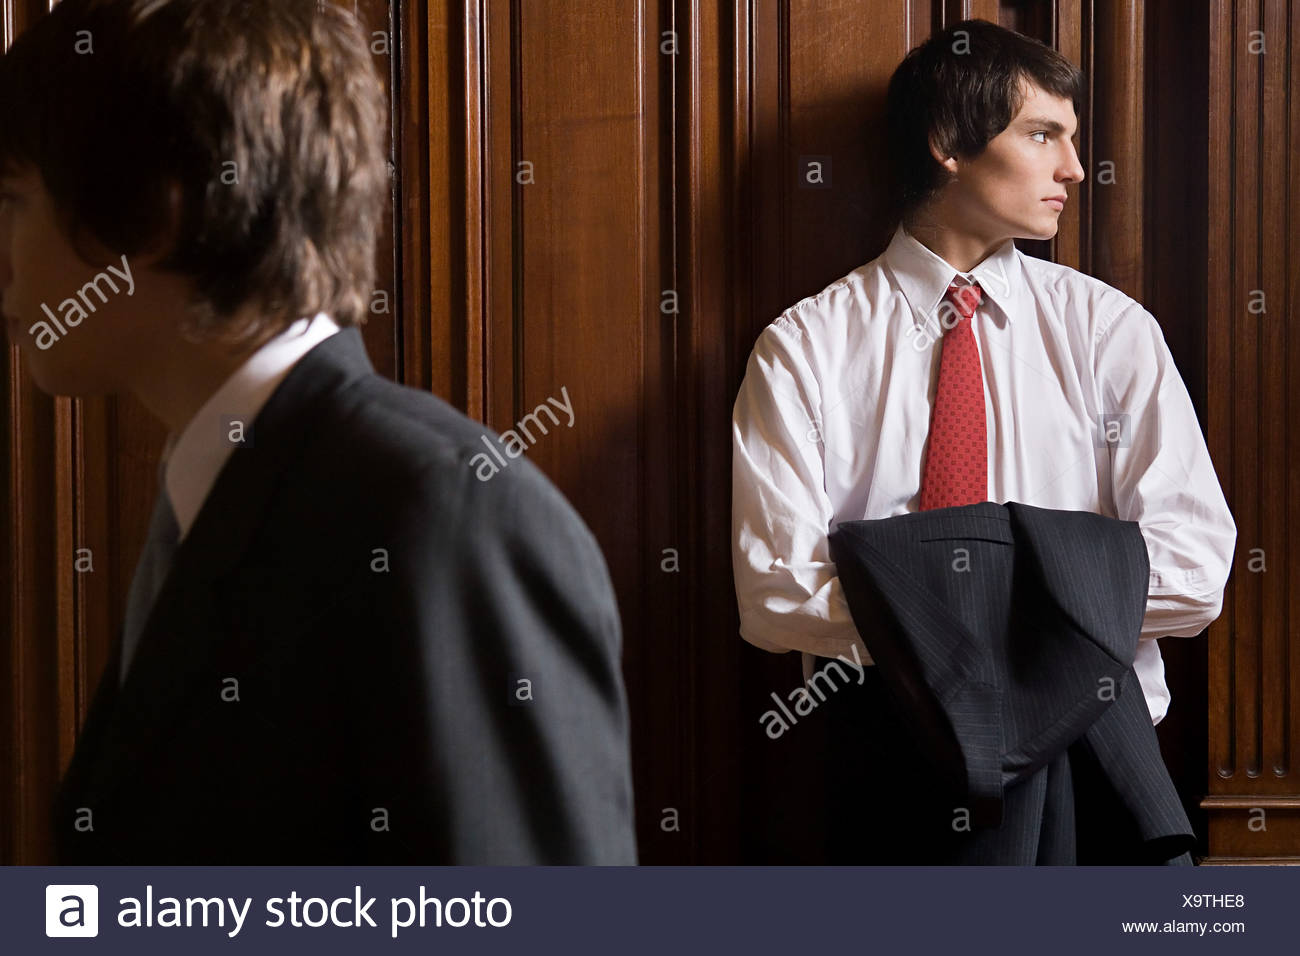 Boys wearing suits - Stock Image